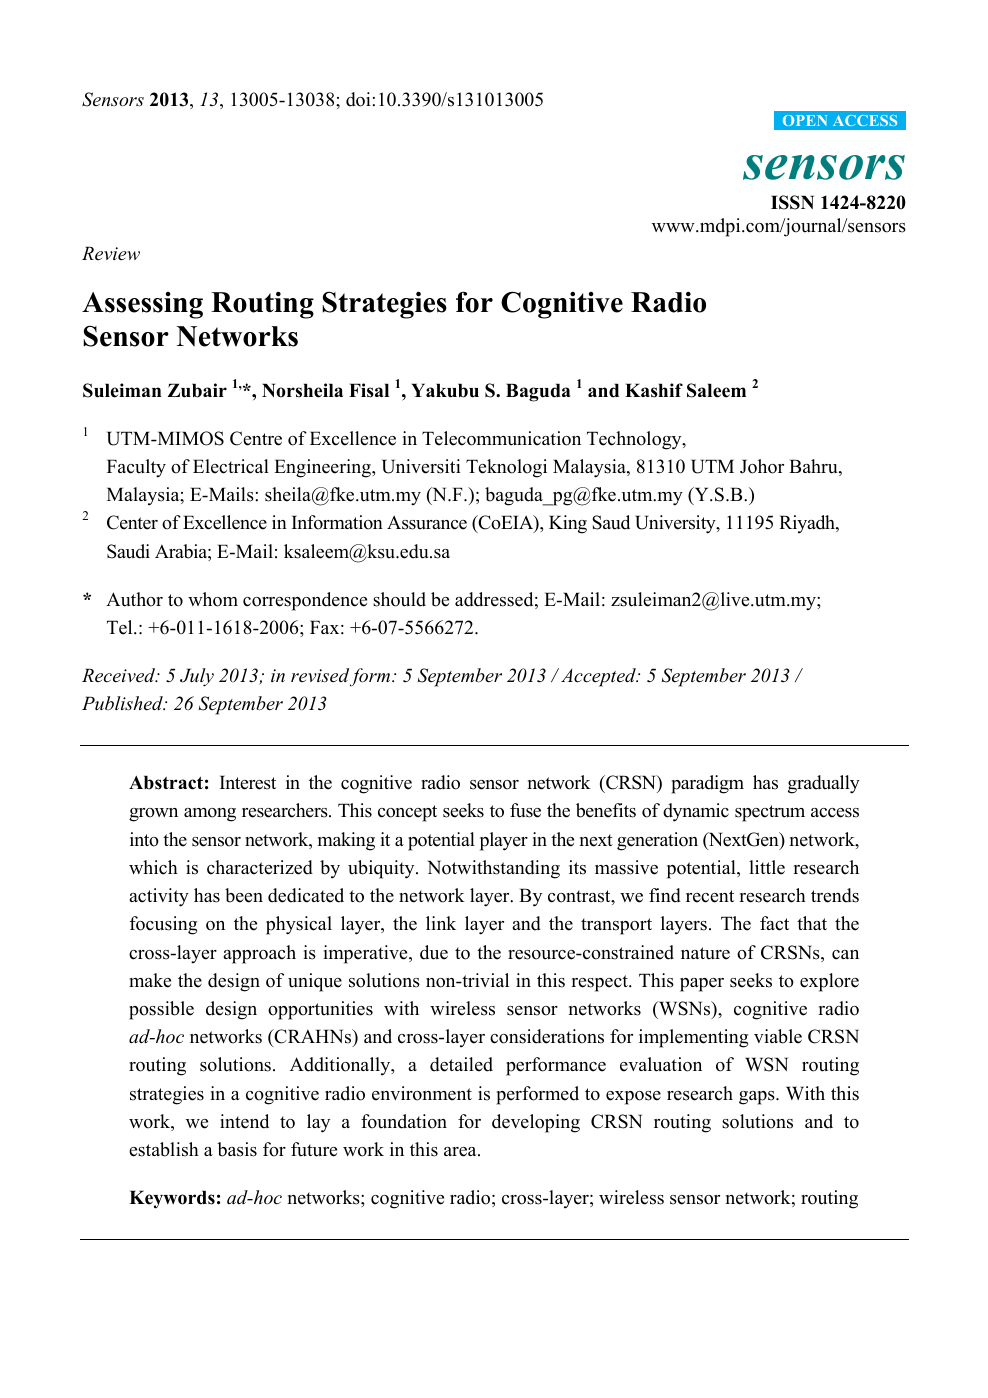 Assessing Routing Strategies for Cognitive Radio Sensor